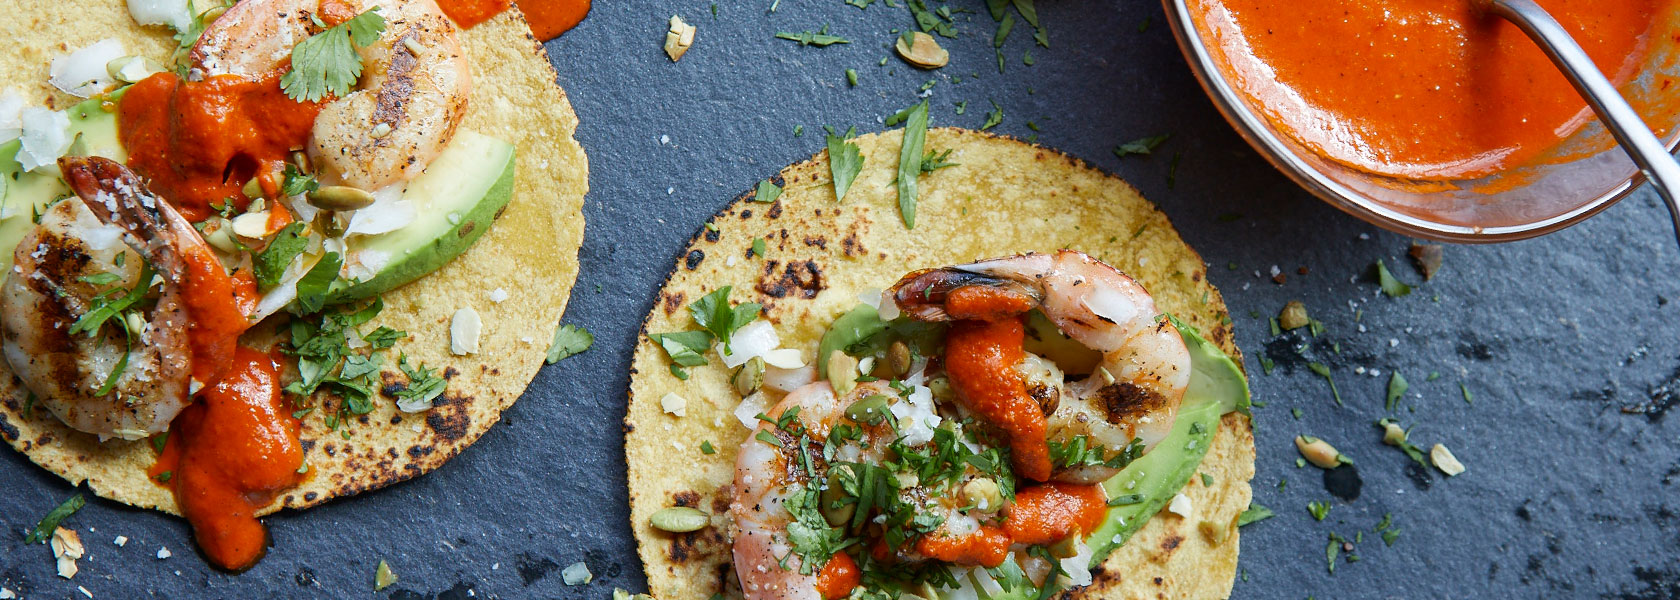 shrimp tacos with red salsa